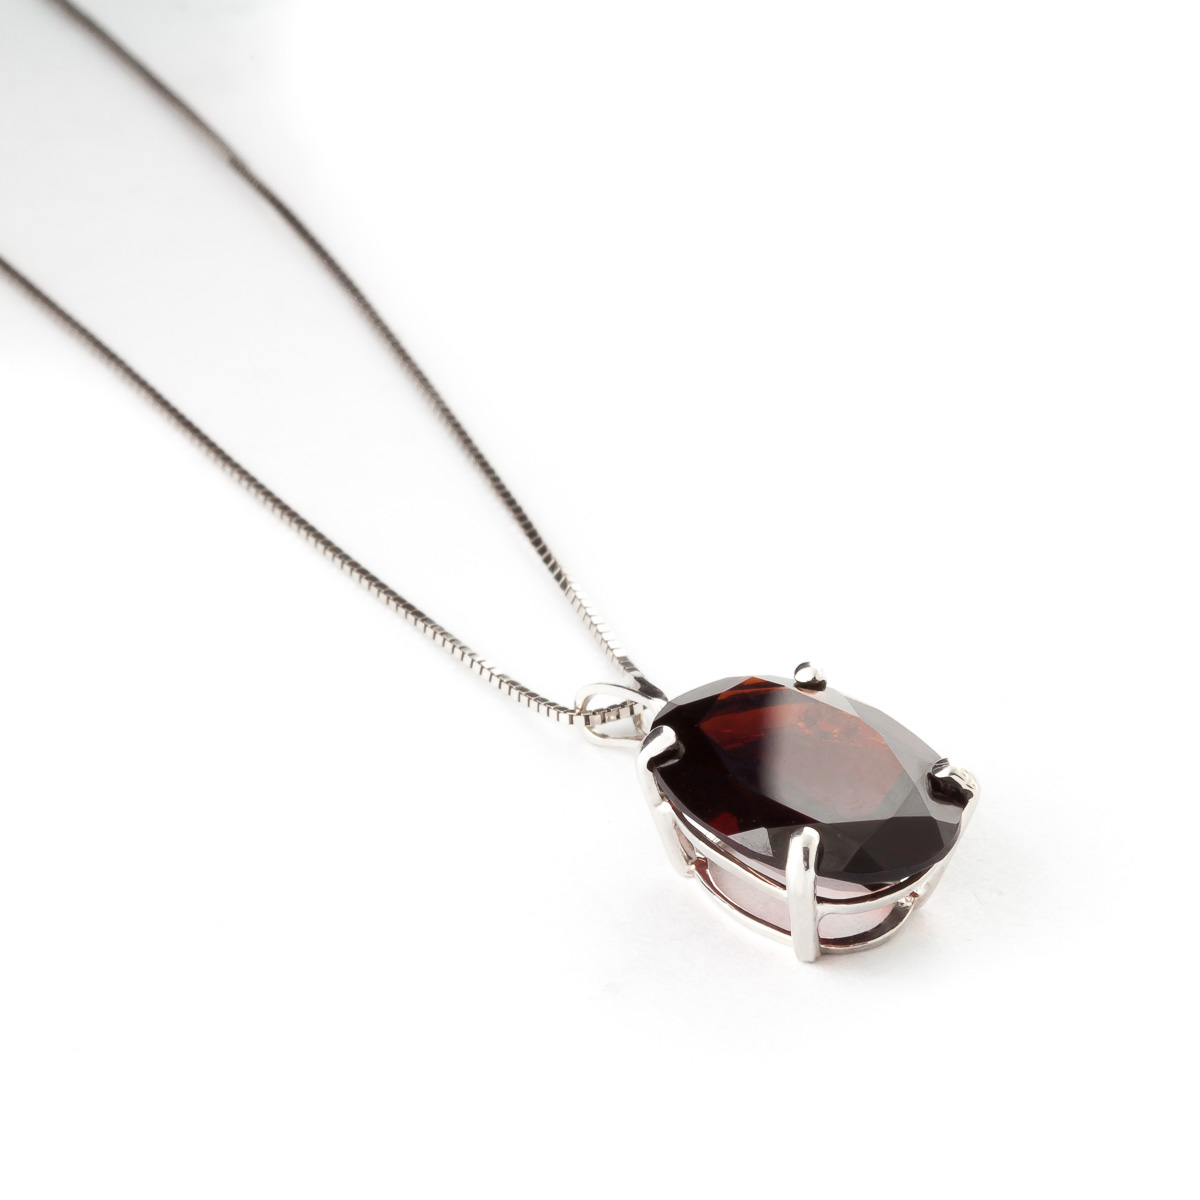 Garnet Oval Pendant Necklace 6 ct in 9ct White Gold